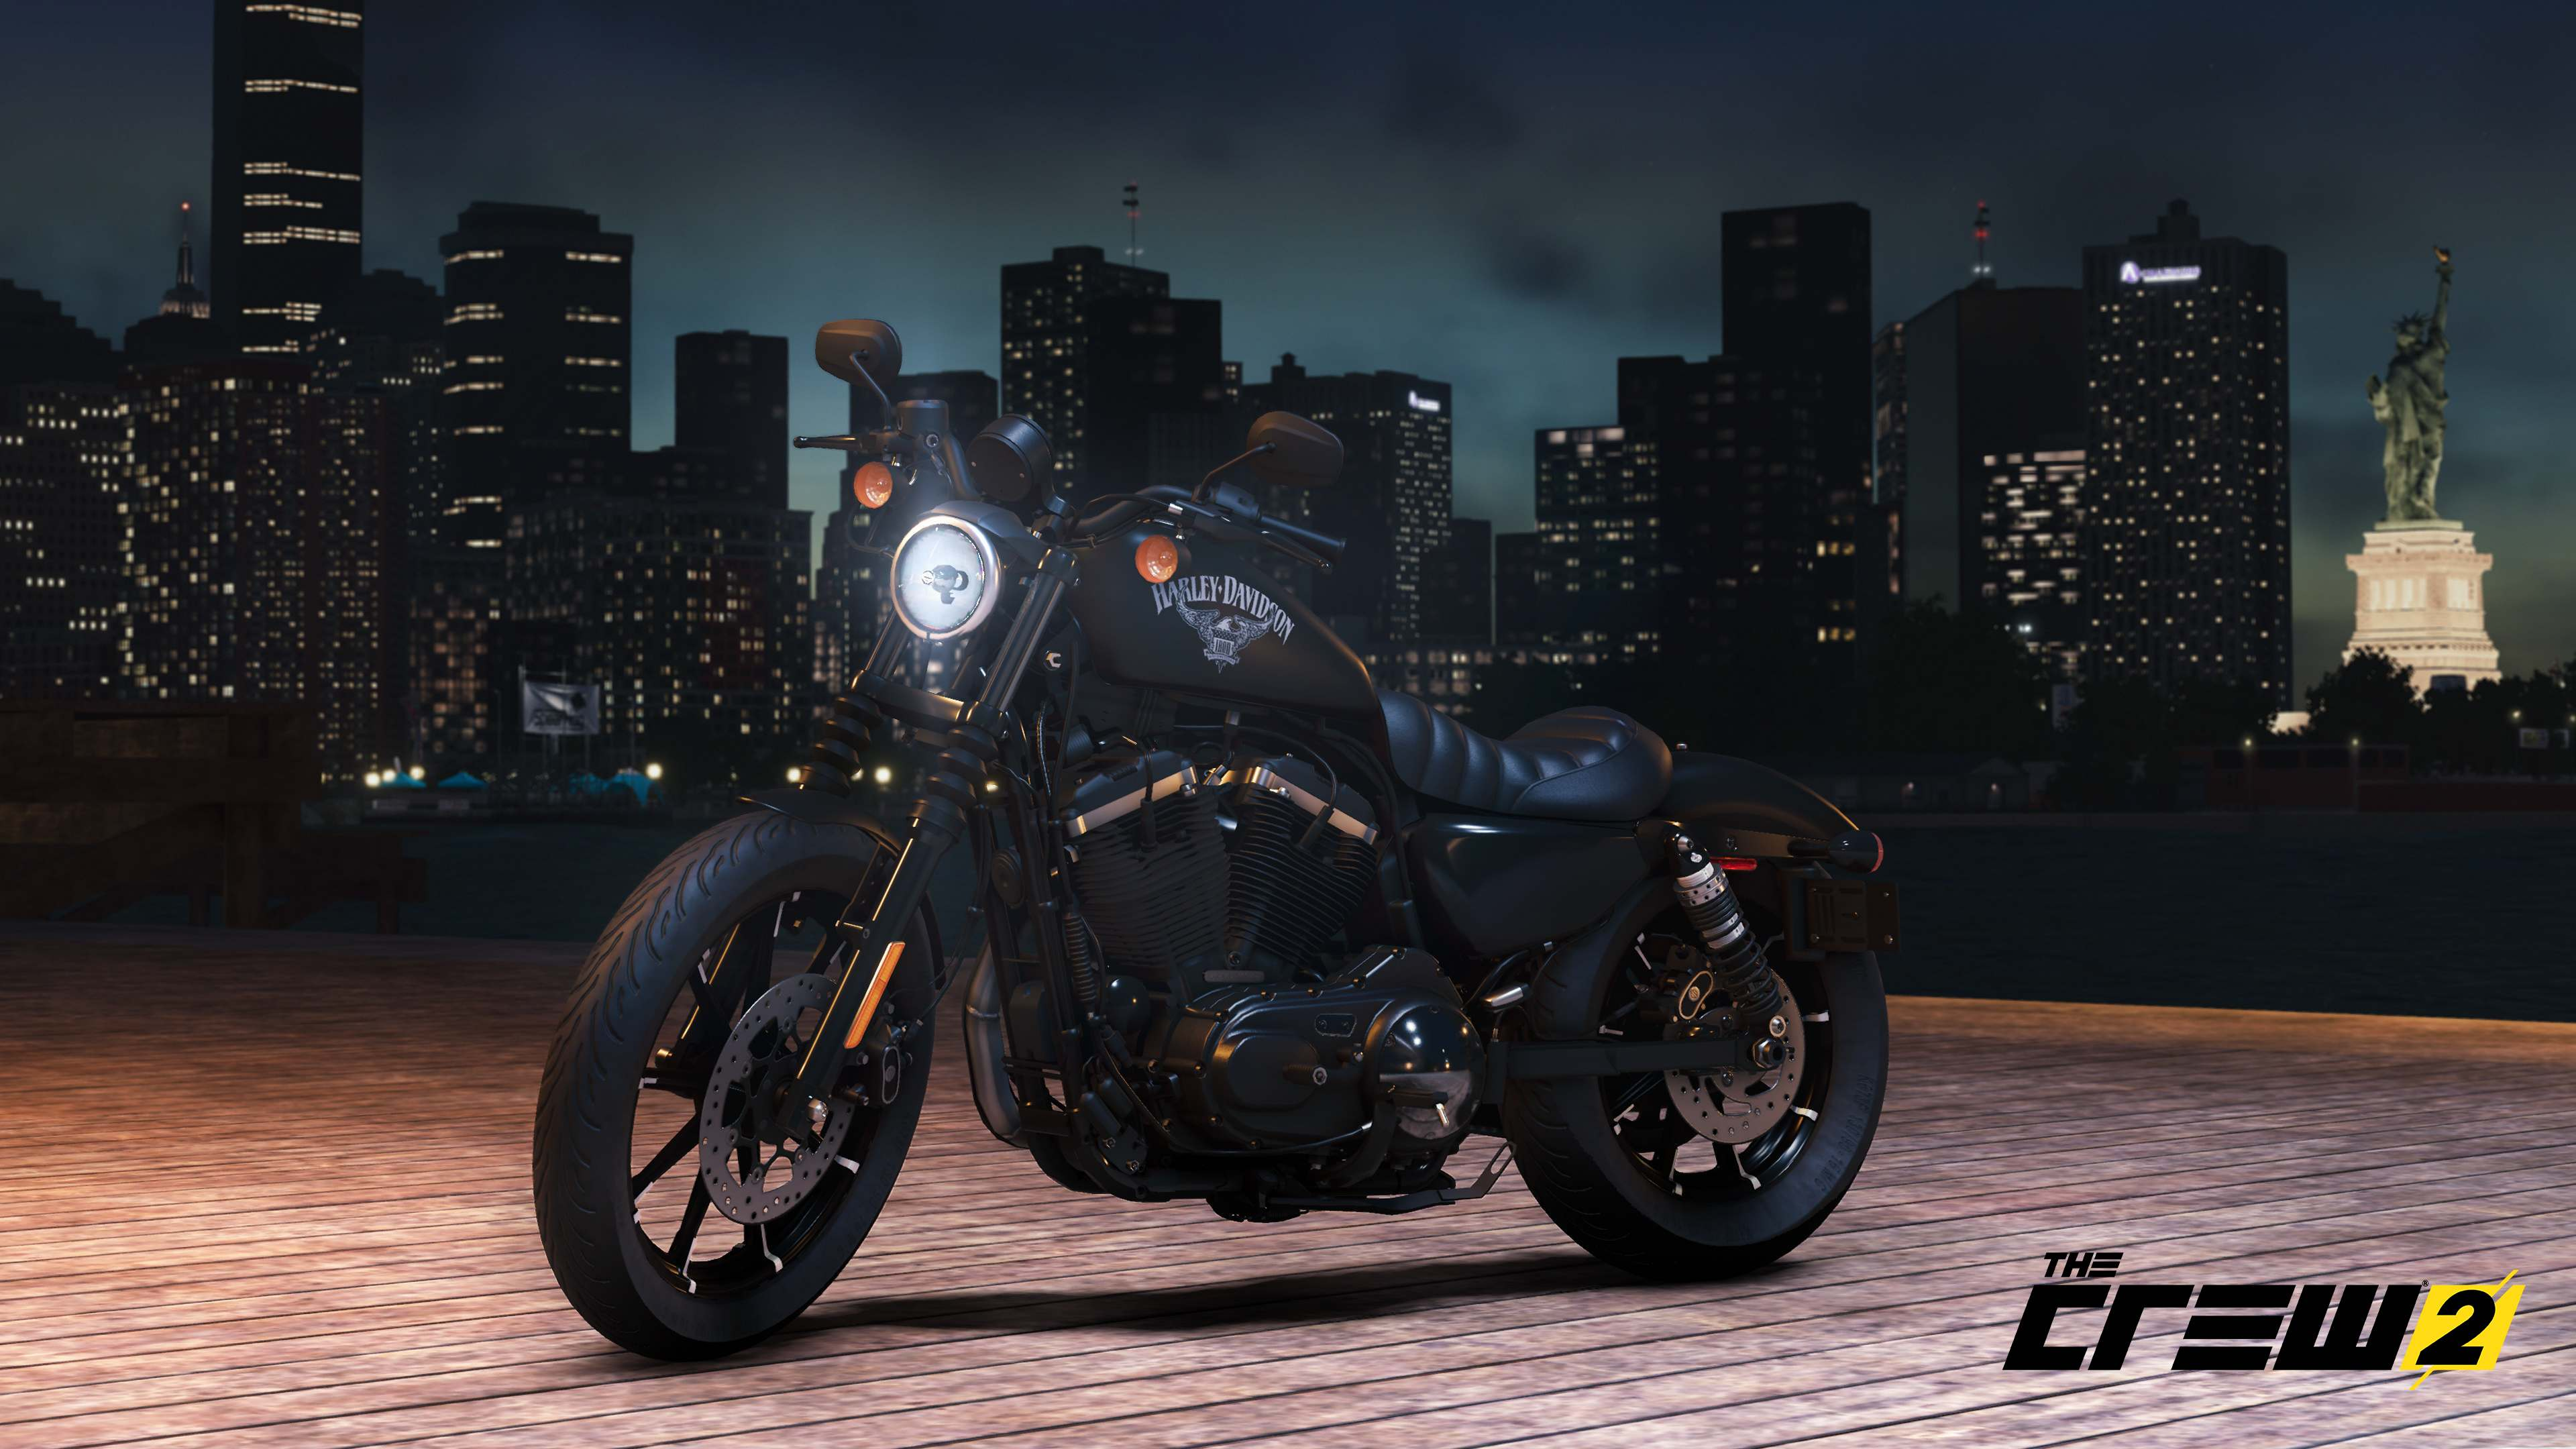 The Crew 2 adds Harley-Davidson motorcycles